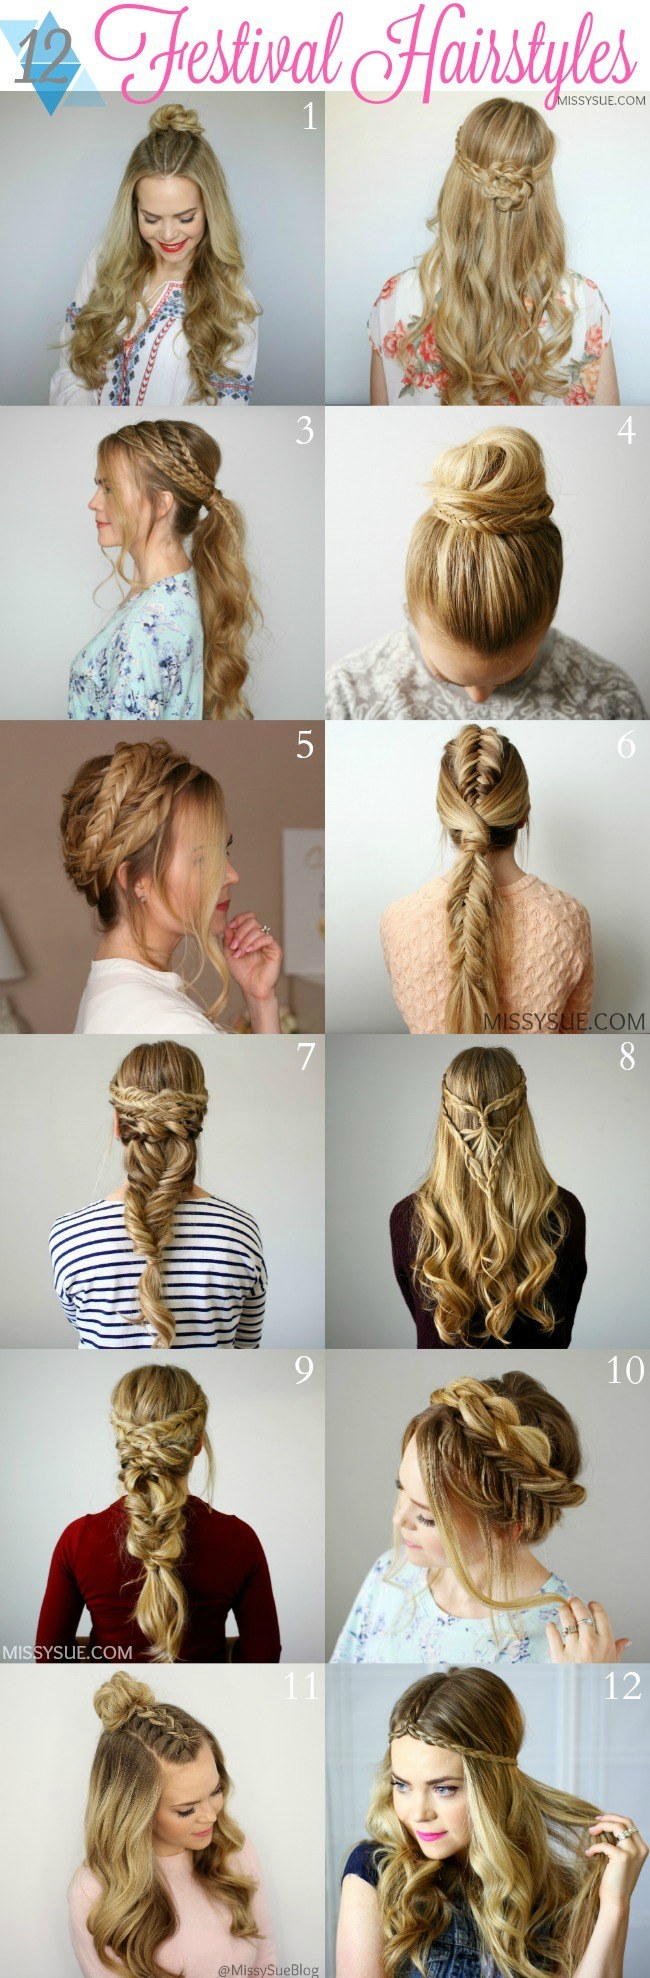 12 Festival Hairstyles